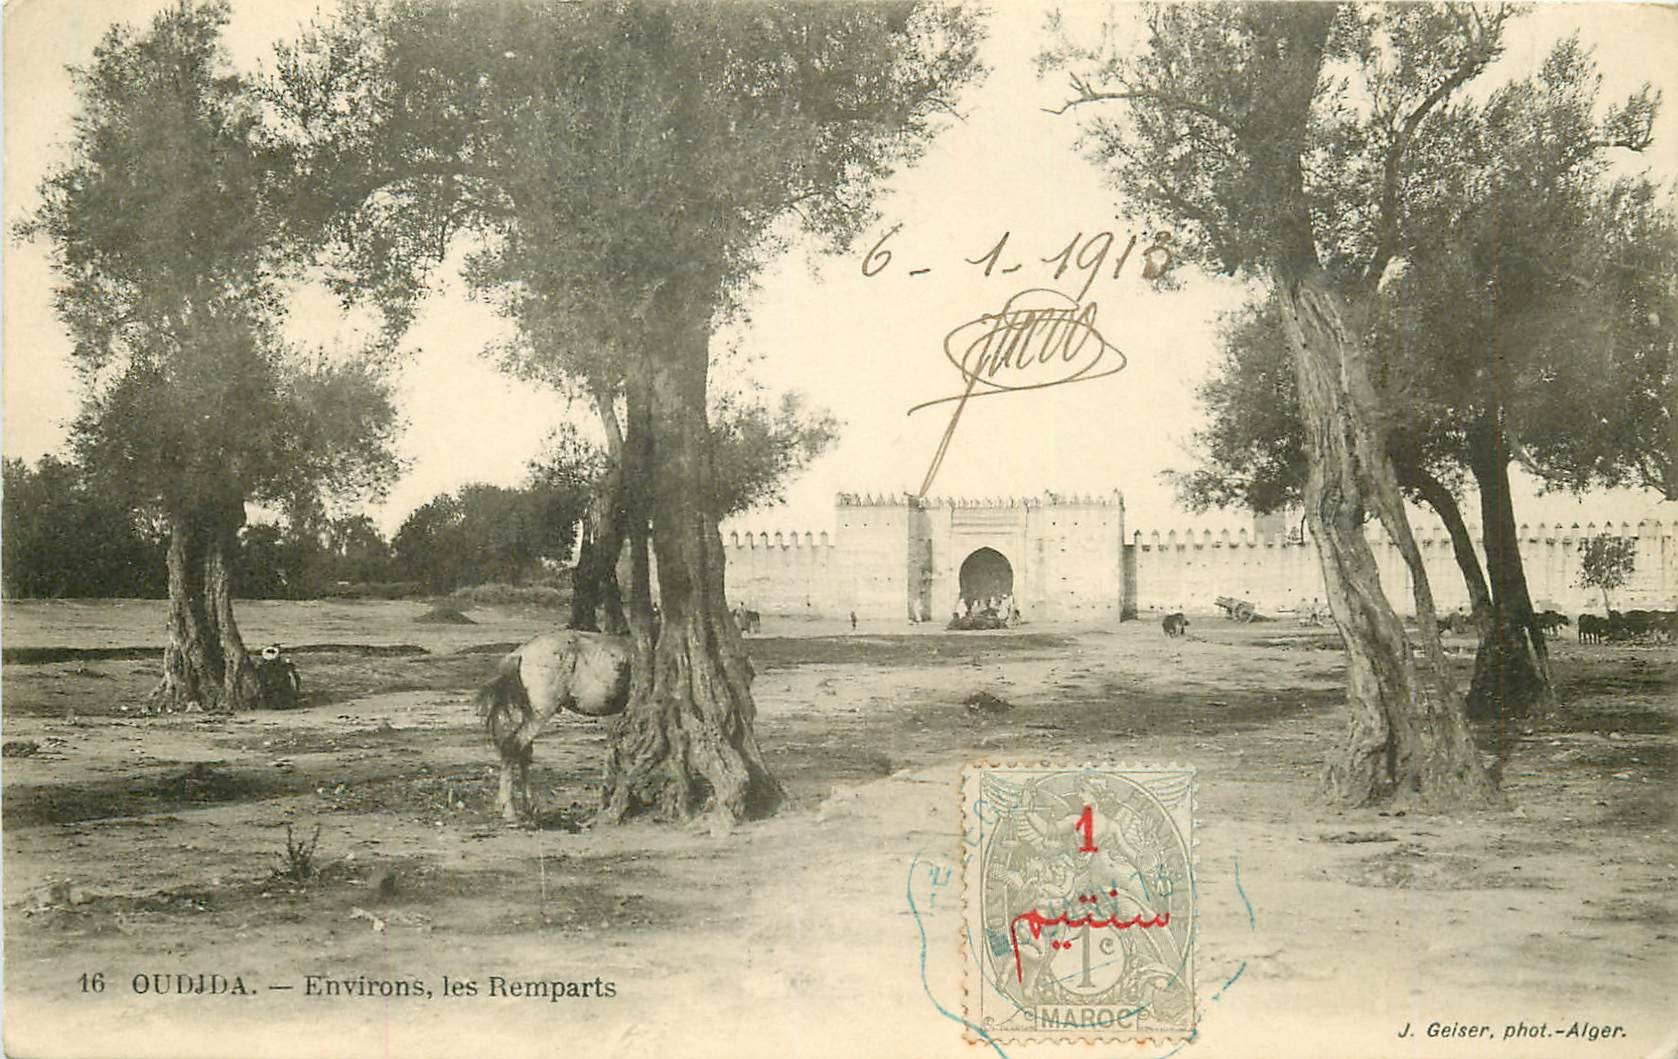 WW OUDJDA. Environs des Remparts. Rare timbre 1 centime 1913